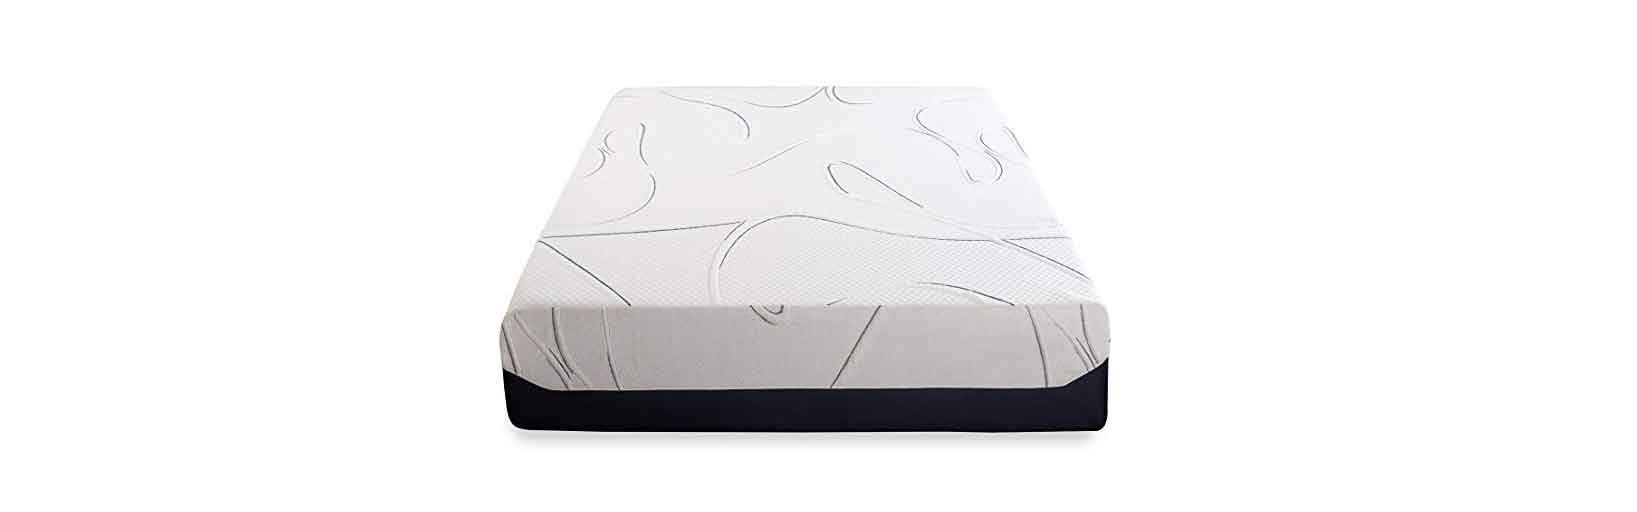 Night Therapy Reviews 2019 Mattresses Revealed Buy Or Avoid